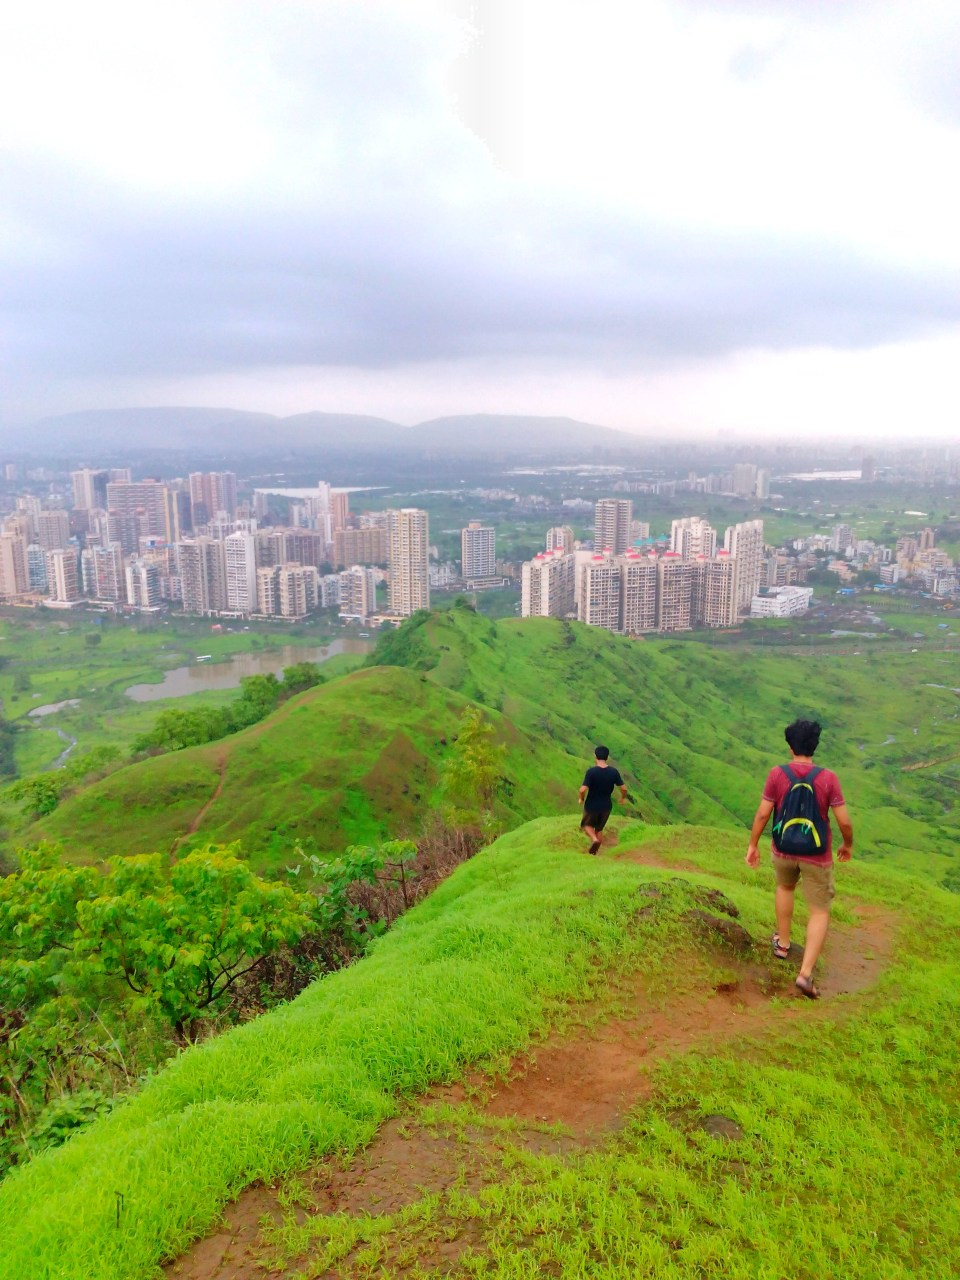 53 Azure Sky Follows - Tania Mukherjee Banerjee -Kharghar hills -Mumbai-Travel Blog